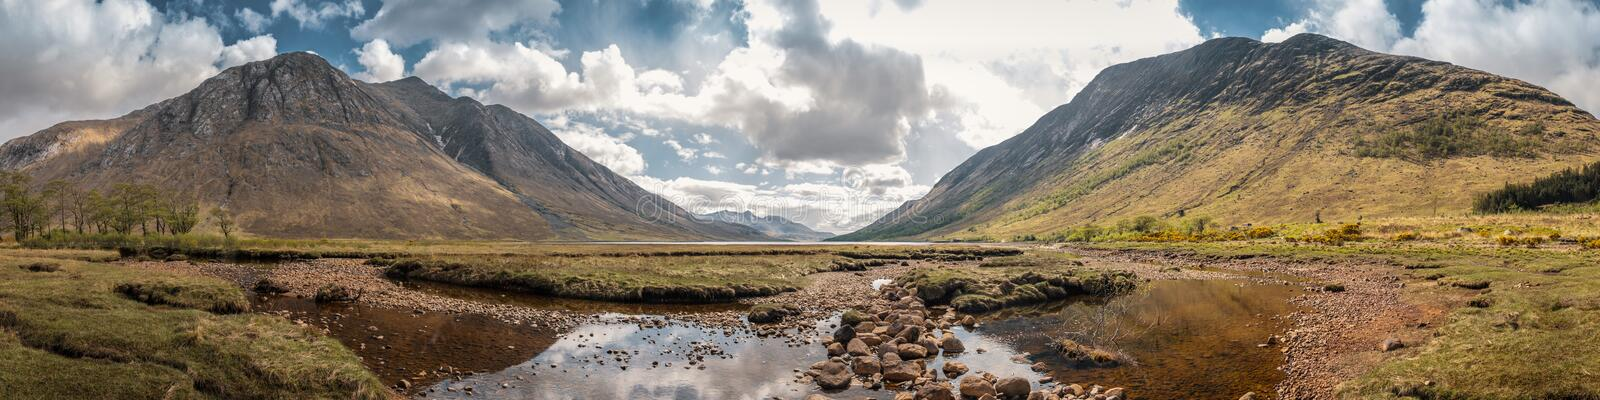 Panoramic view of Loch Etive in the highlands of Scotland royalty free stock images